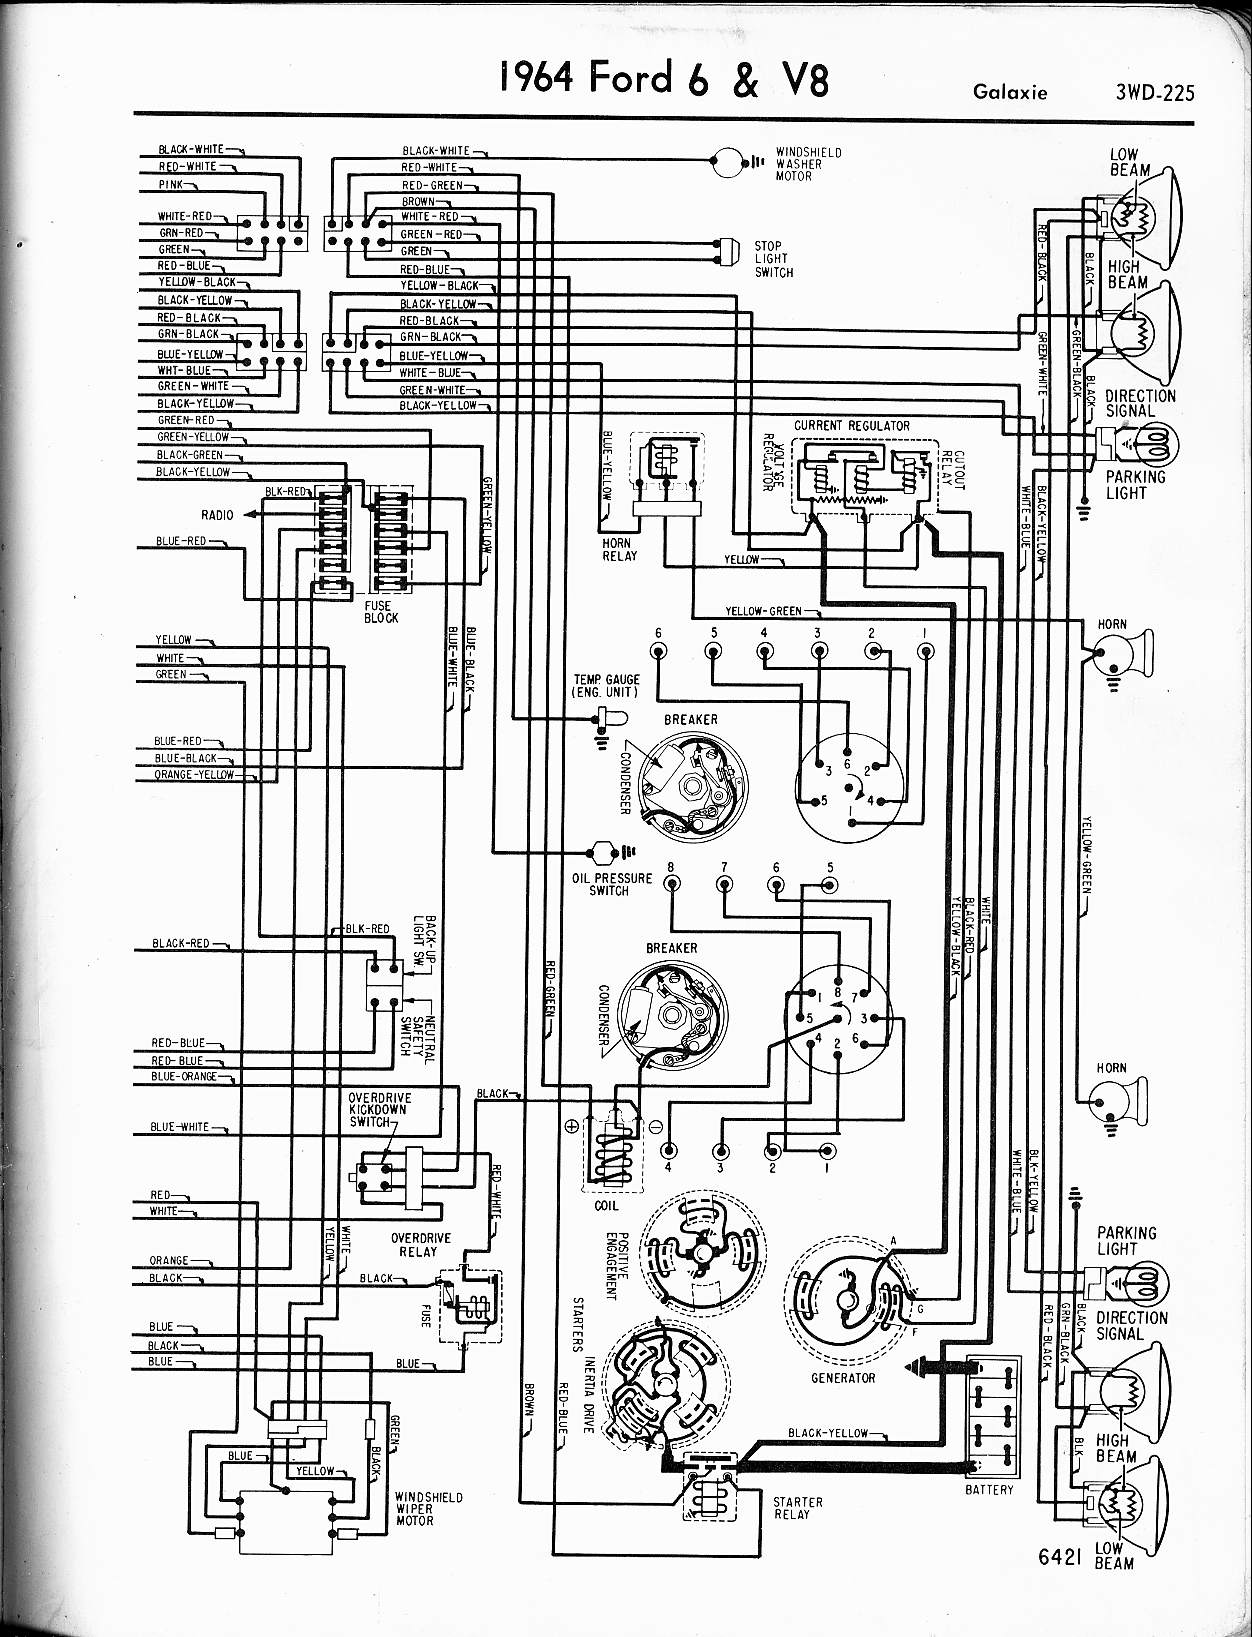 MWire5765 225 64 falcon wiring diagram 64 comet ignition wiring \u2022 wiring ford falcon ignition switch wiring diagram at reclaimingppi.co